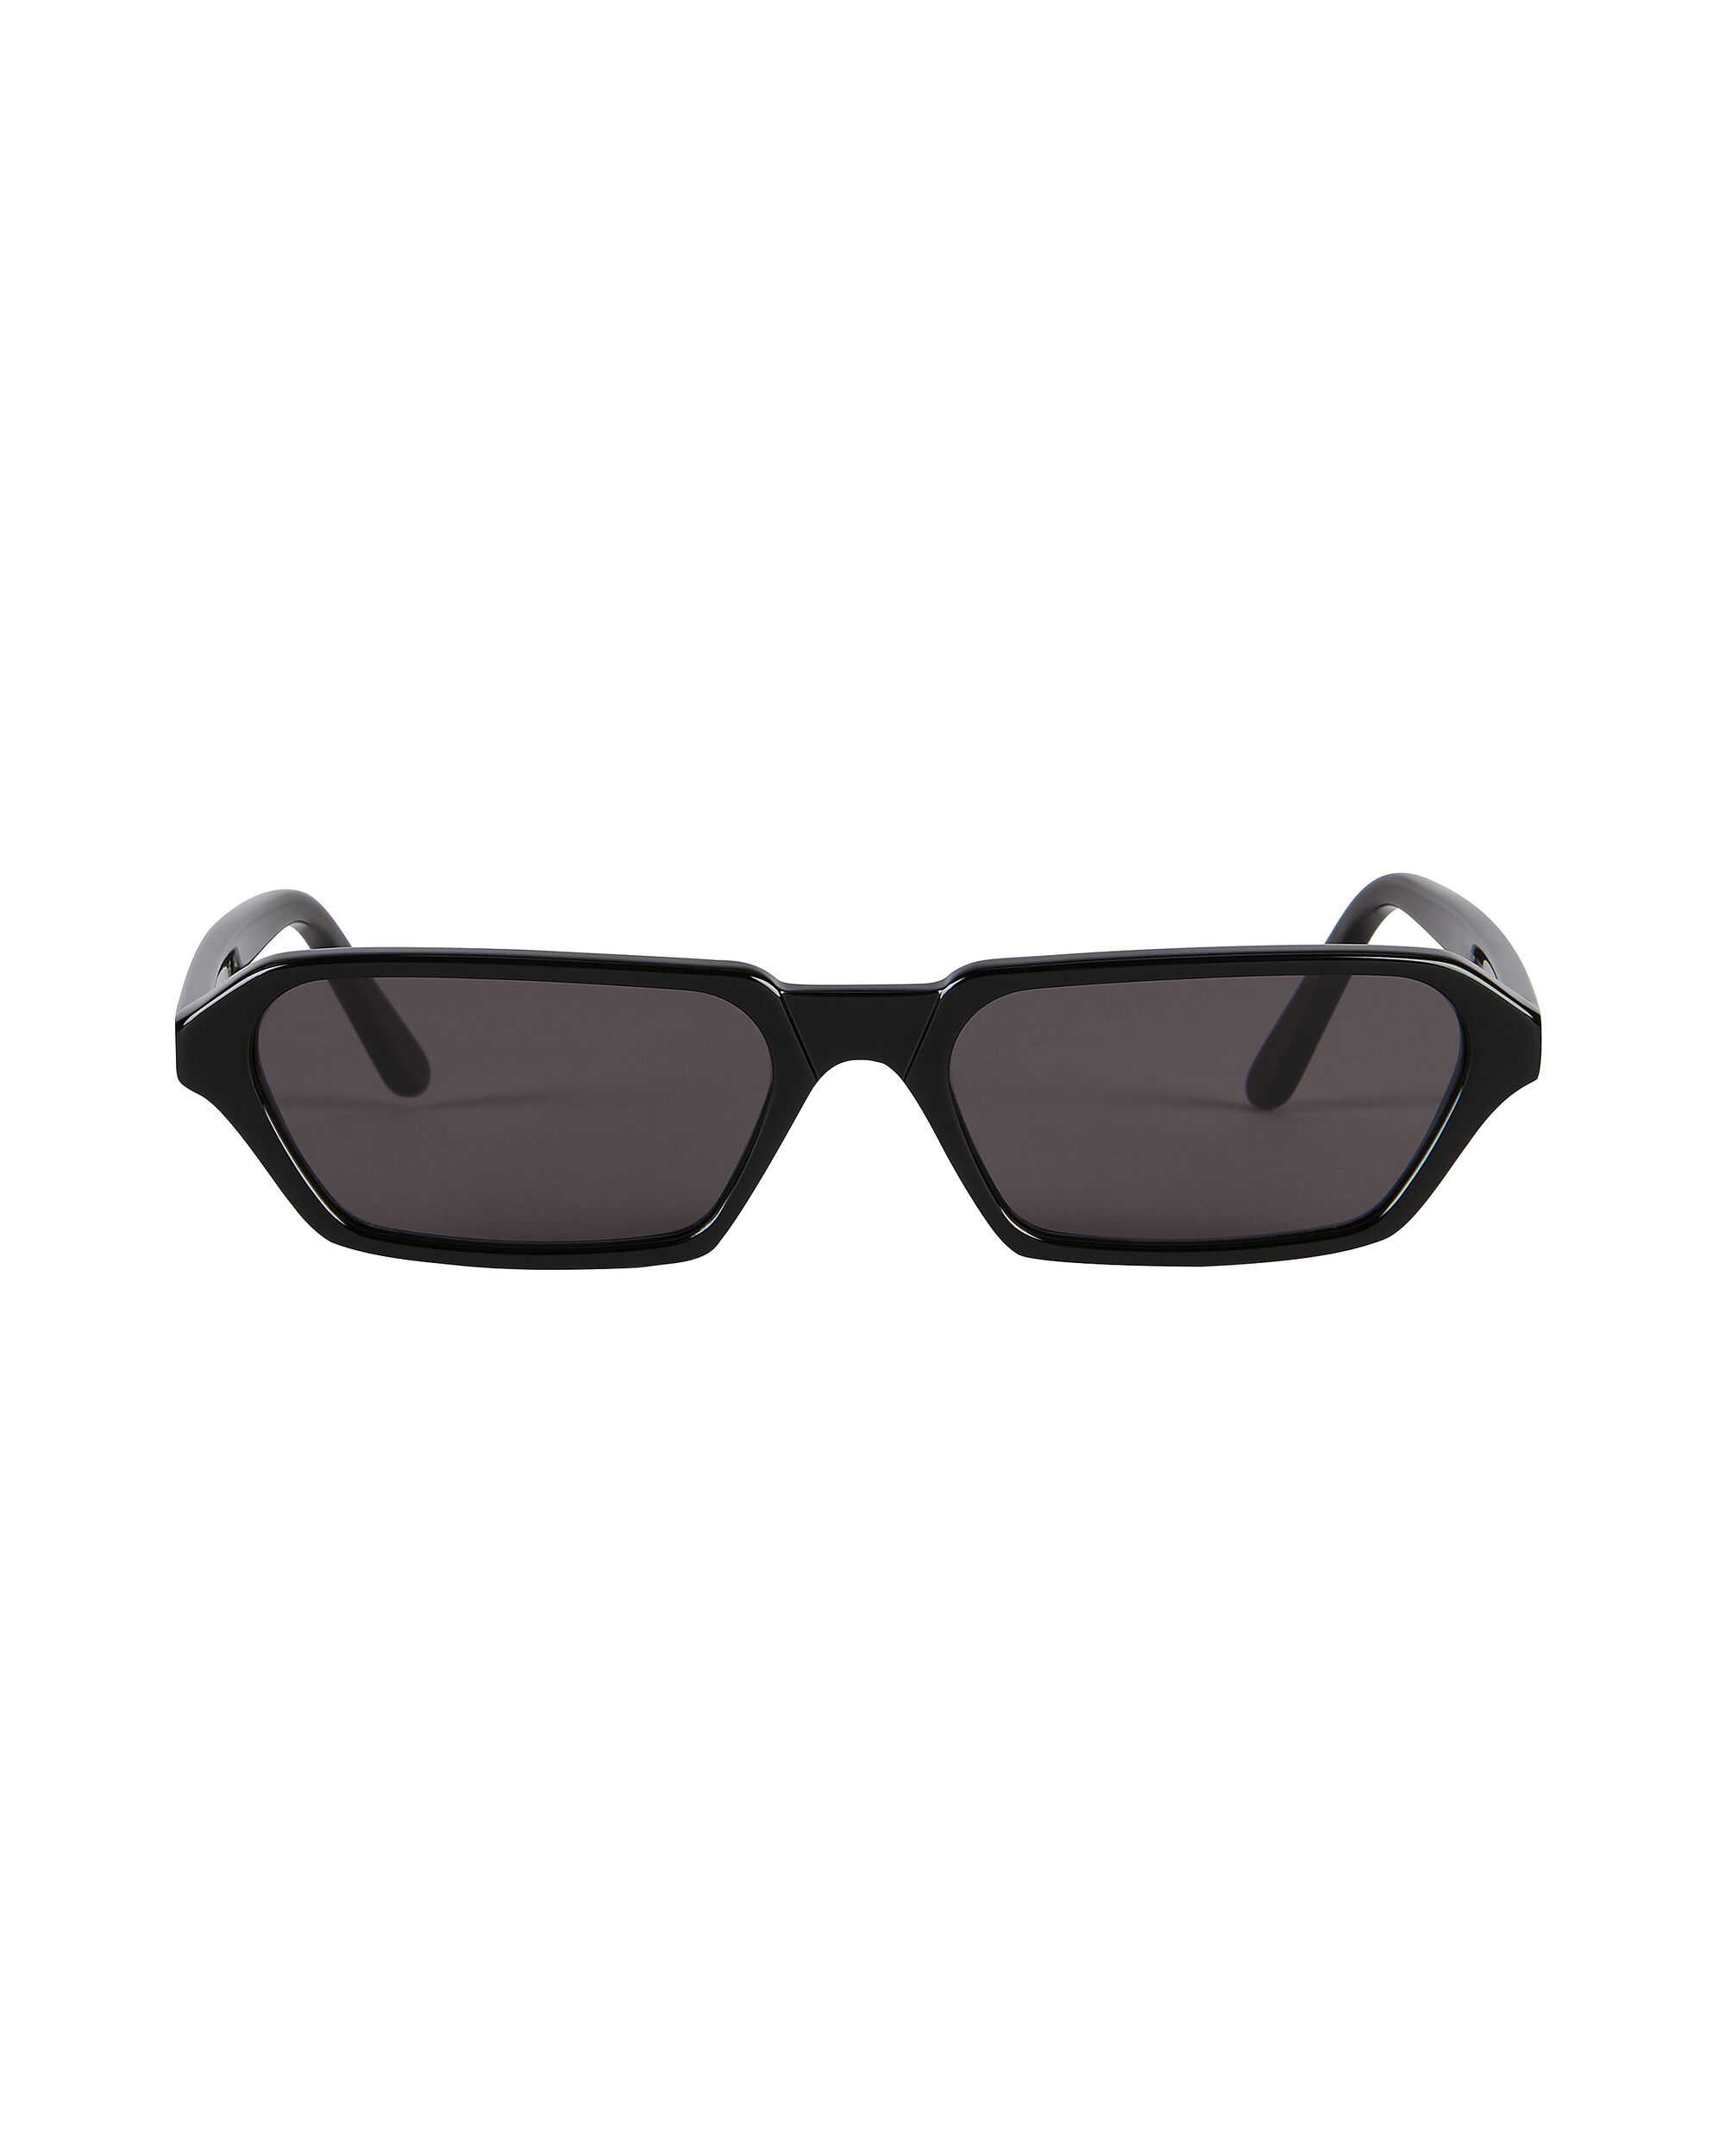 Baxter Black Sunglasses, BLACK, hi-res